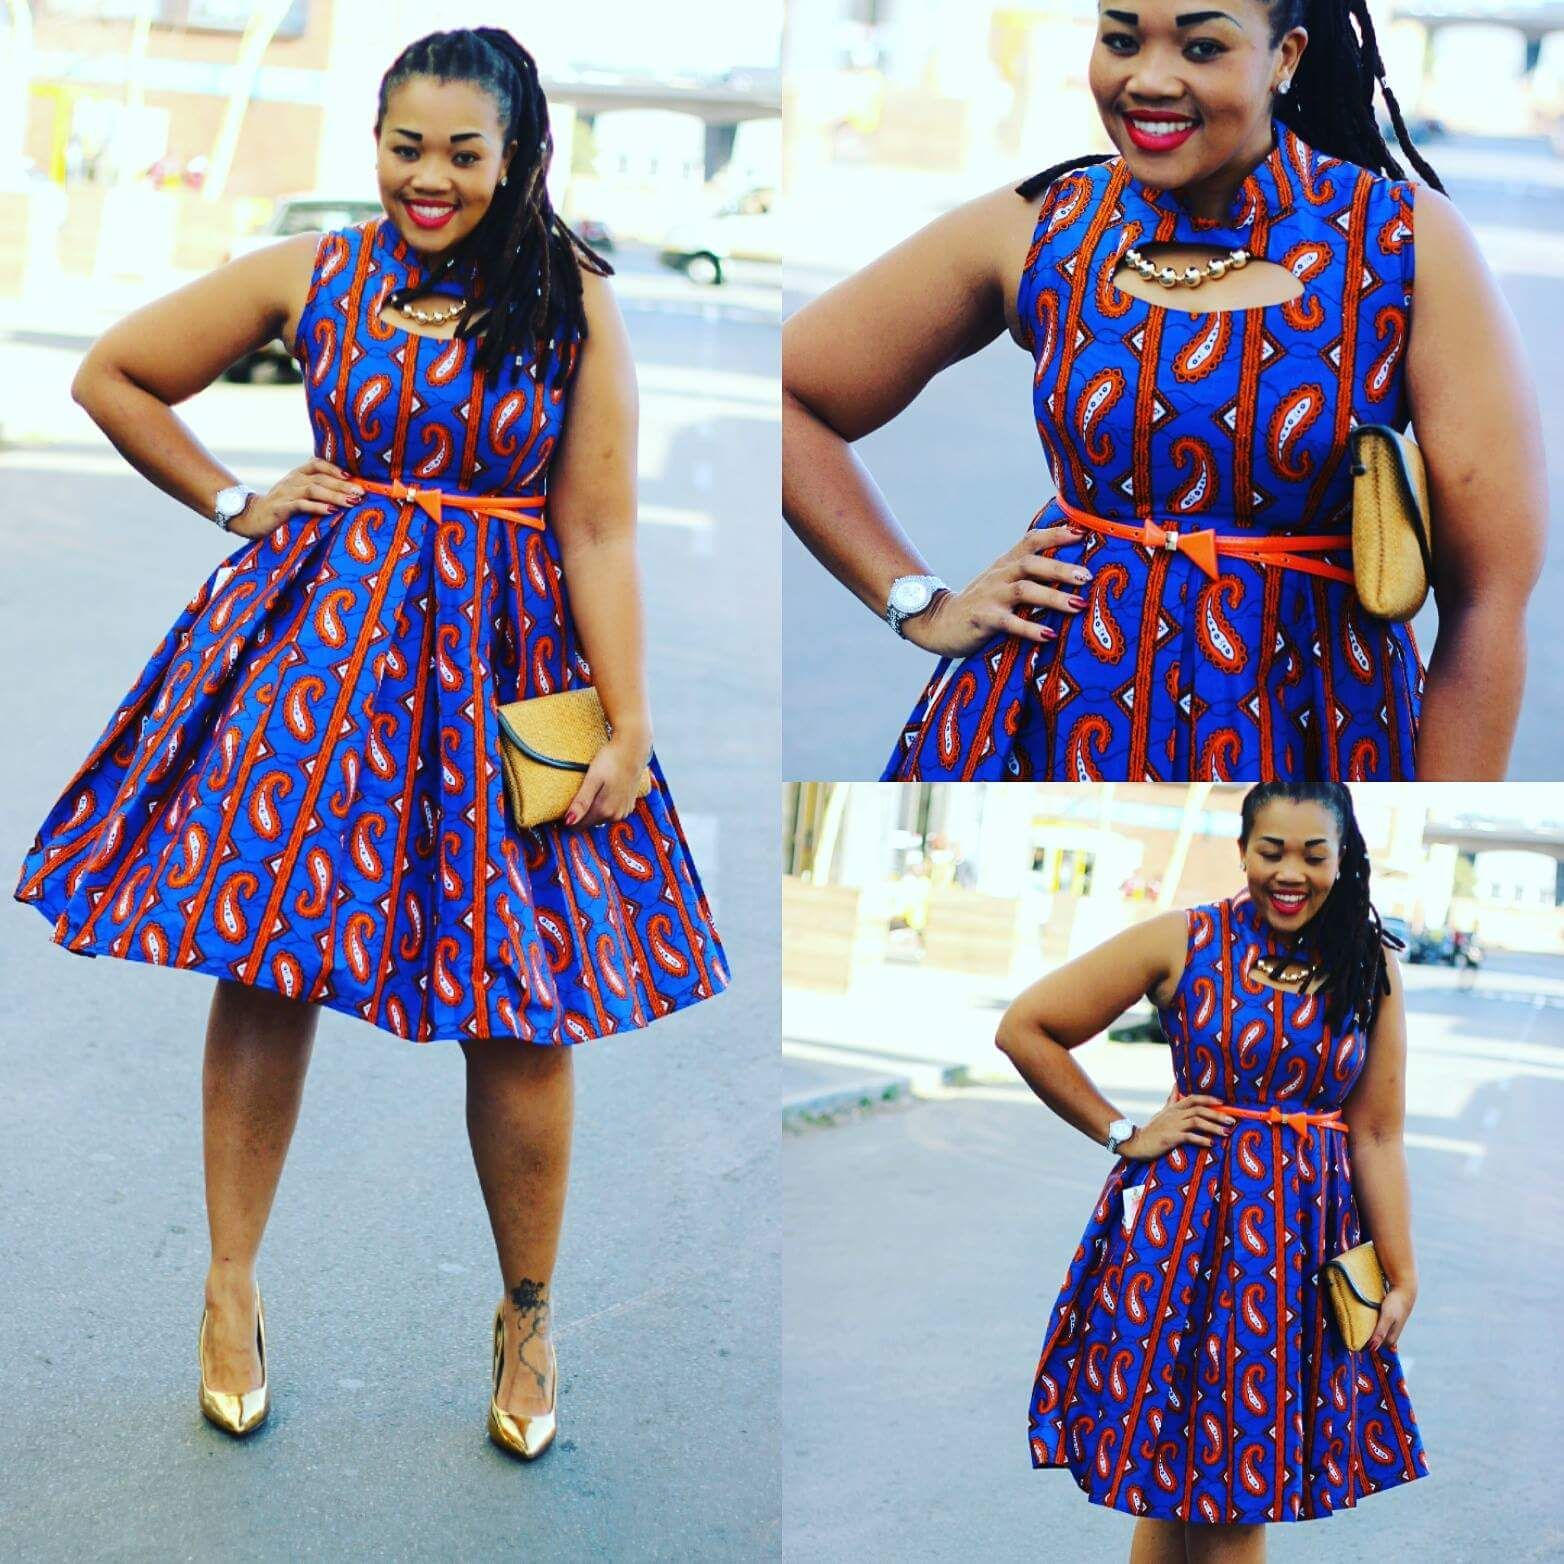 Pin by R. D. on Bow Afrika Fashions | Pinterest | African print ...